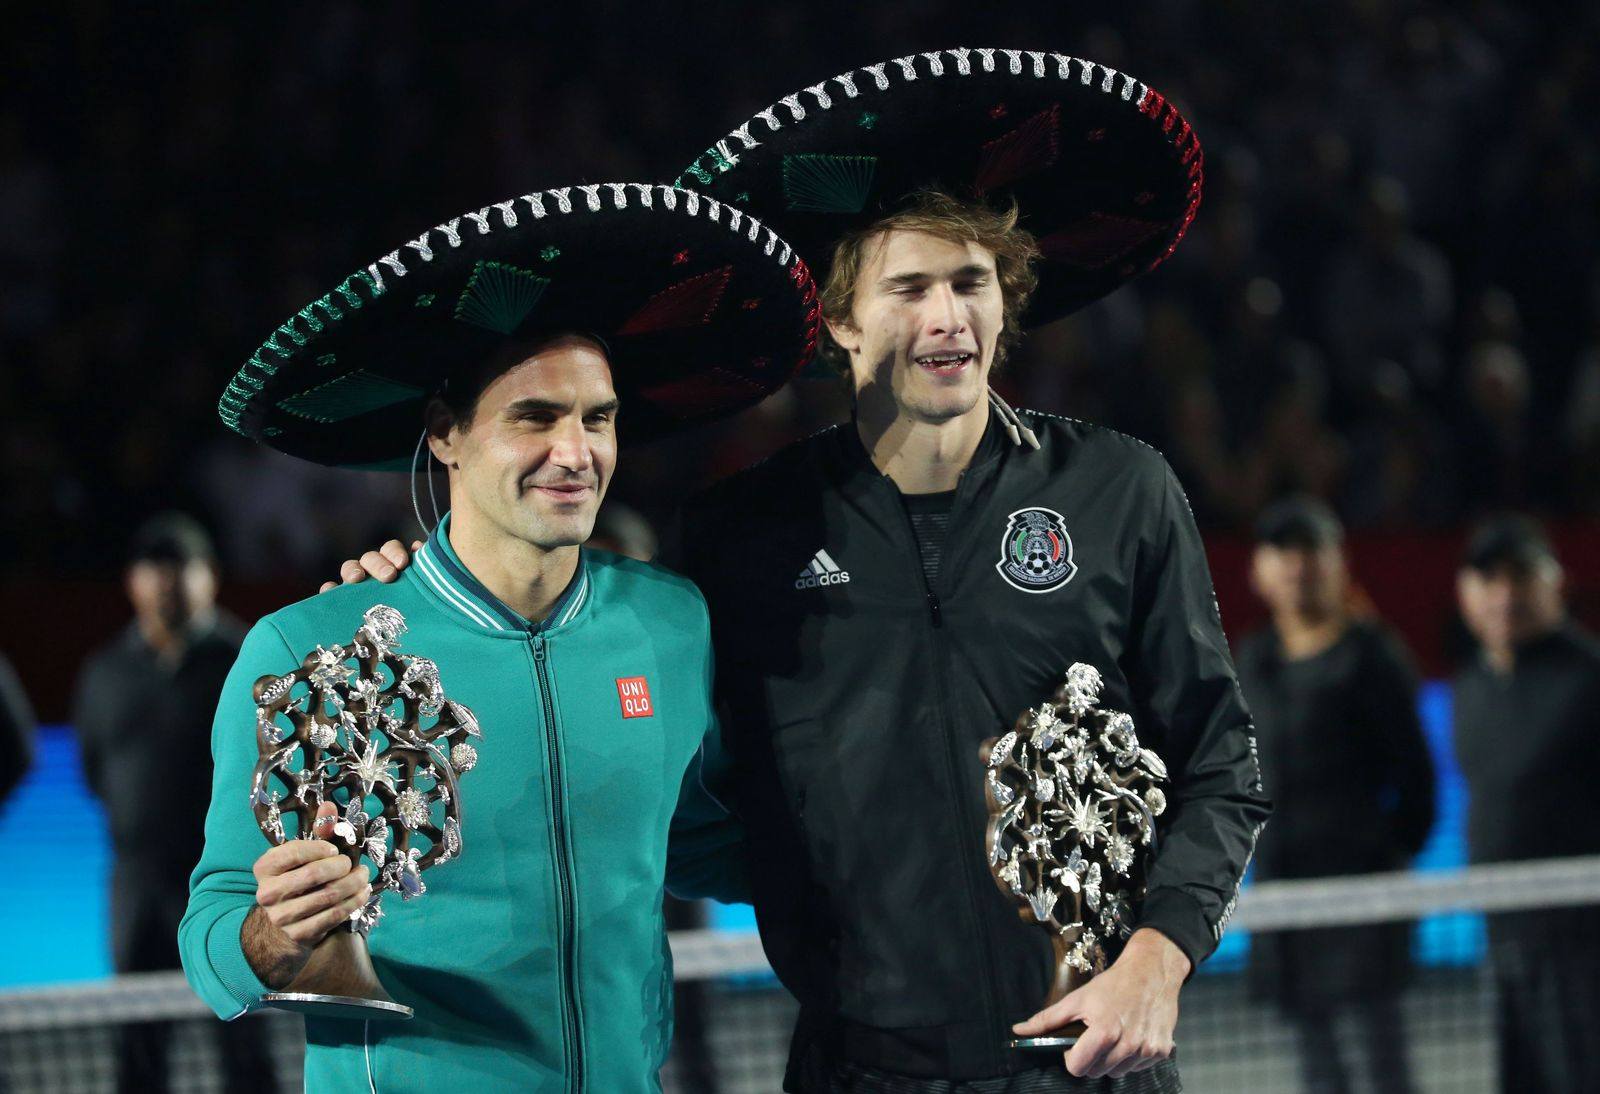 Mexico City Federer Zverev